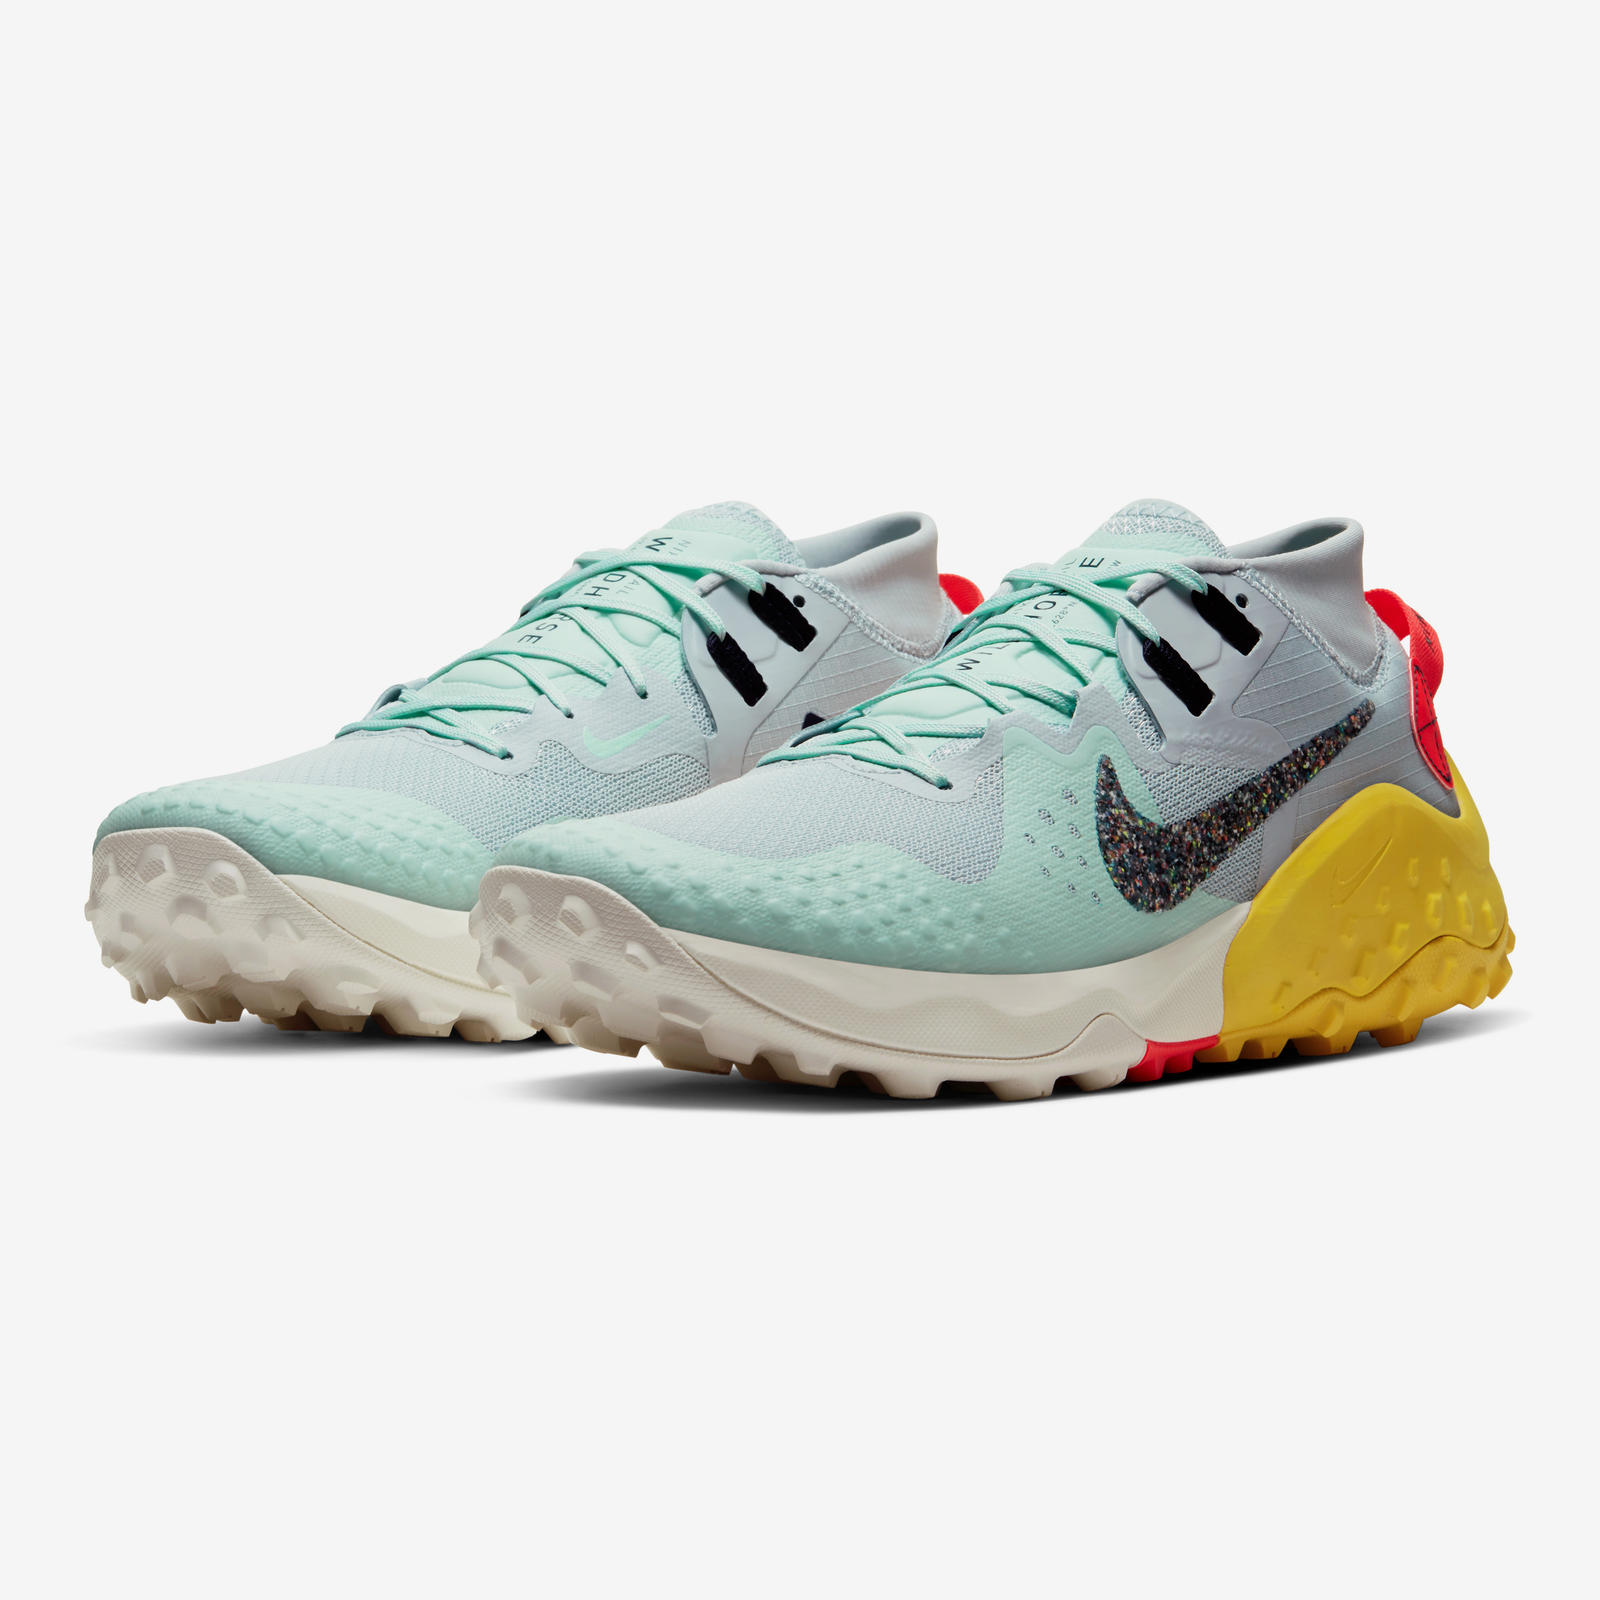 Nike Trail Air Zoom Kiger 6 Air Zoom Wildhorse 6 Official Images and Release Date 18